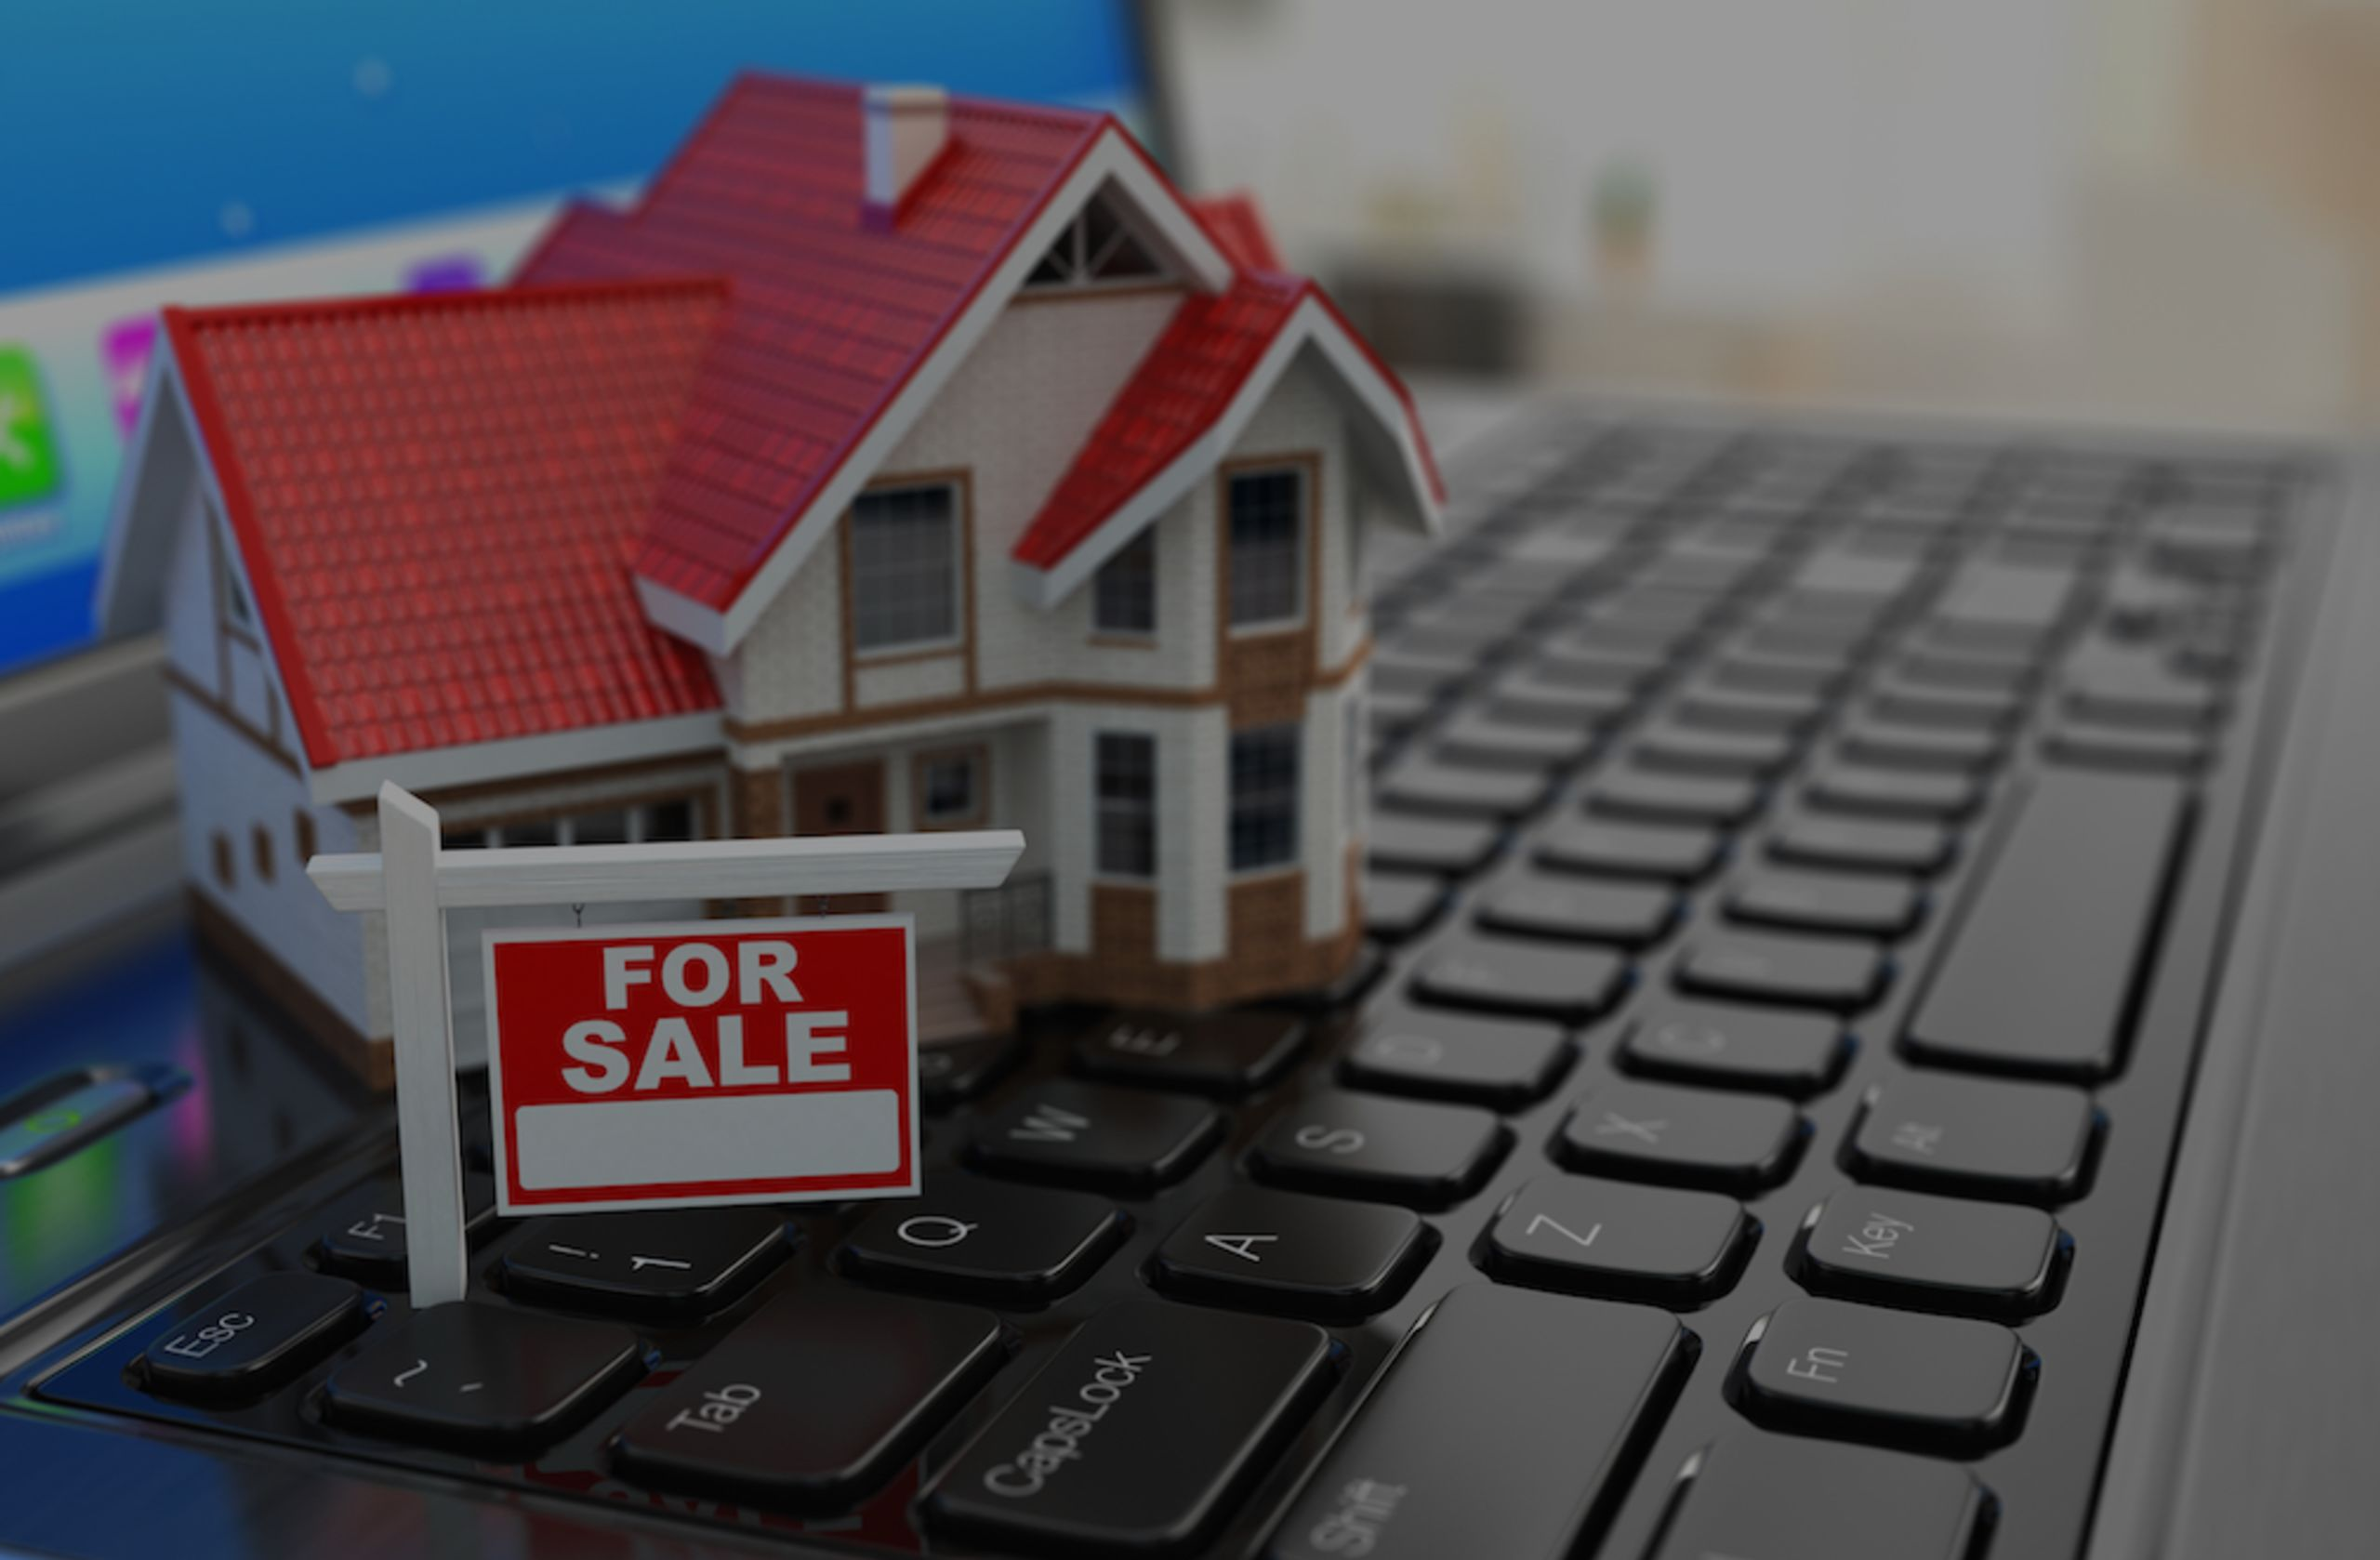 Survey: Most homebuyers would prefer to purchase their home online